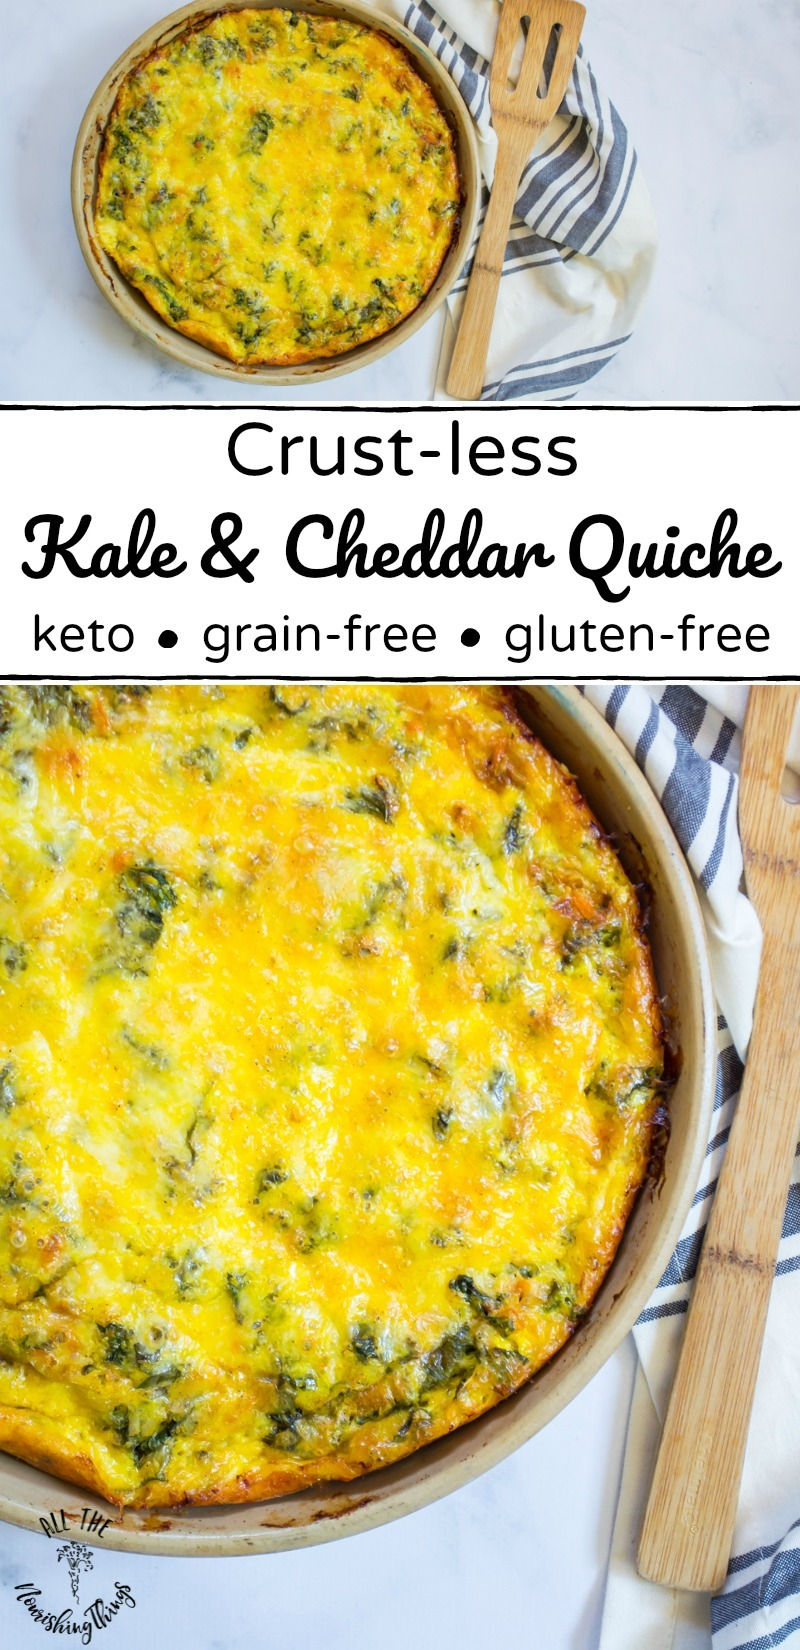 keto crust-less kale and cheddar quiche with wooden spatula